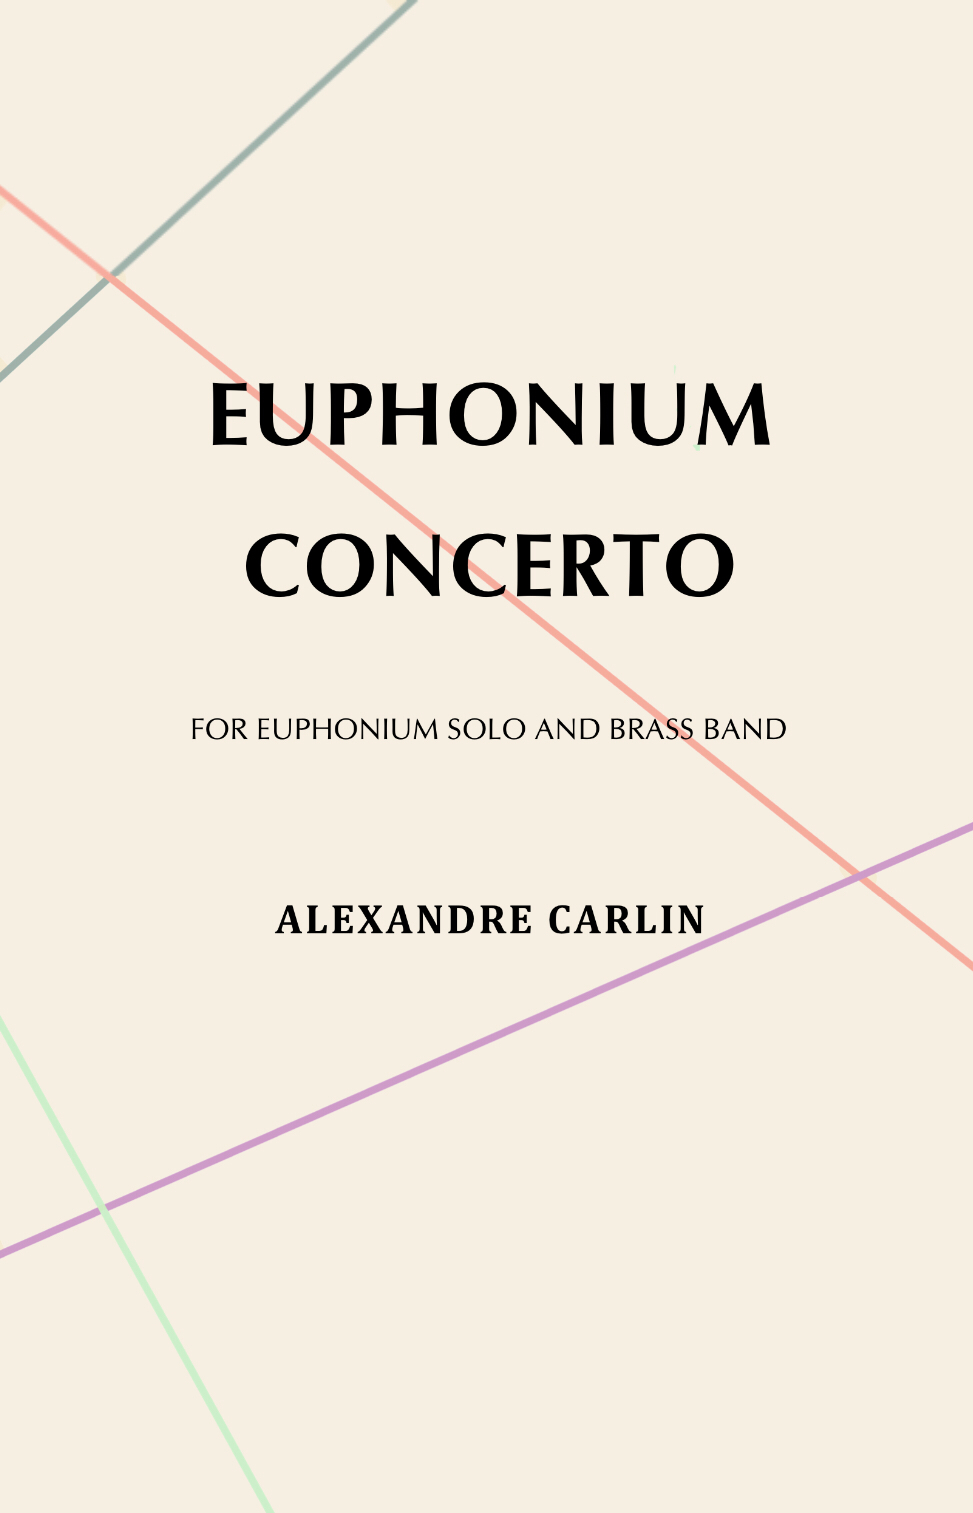 Euphonium Concerto: Brass Band Version by Alexandre Carlin